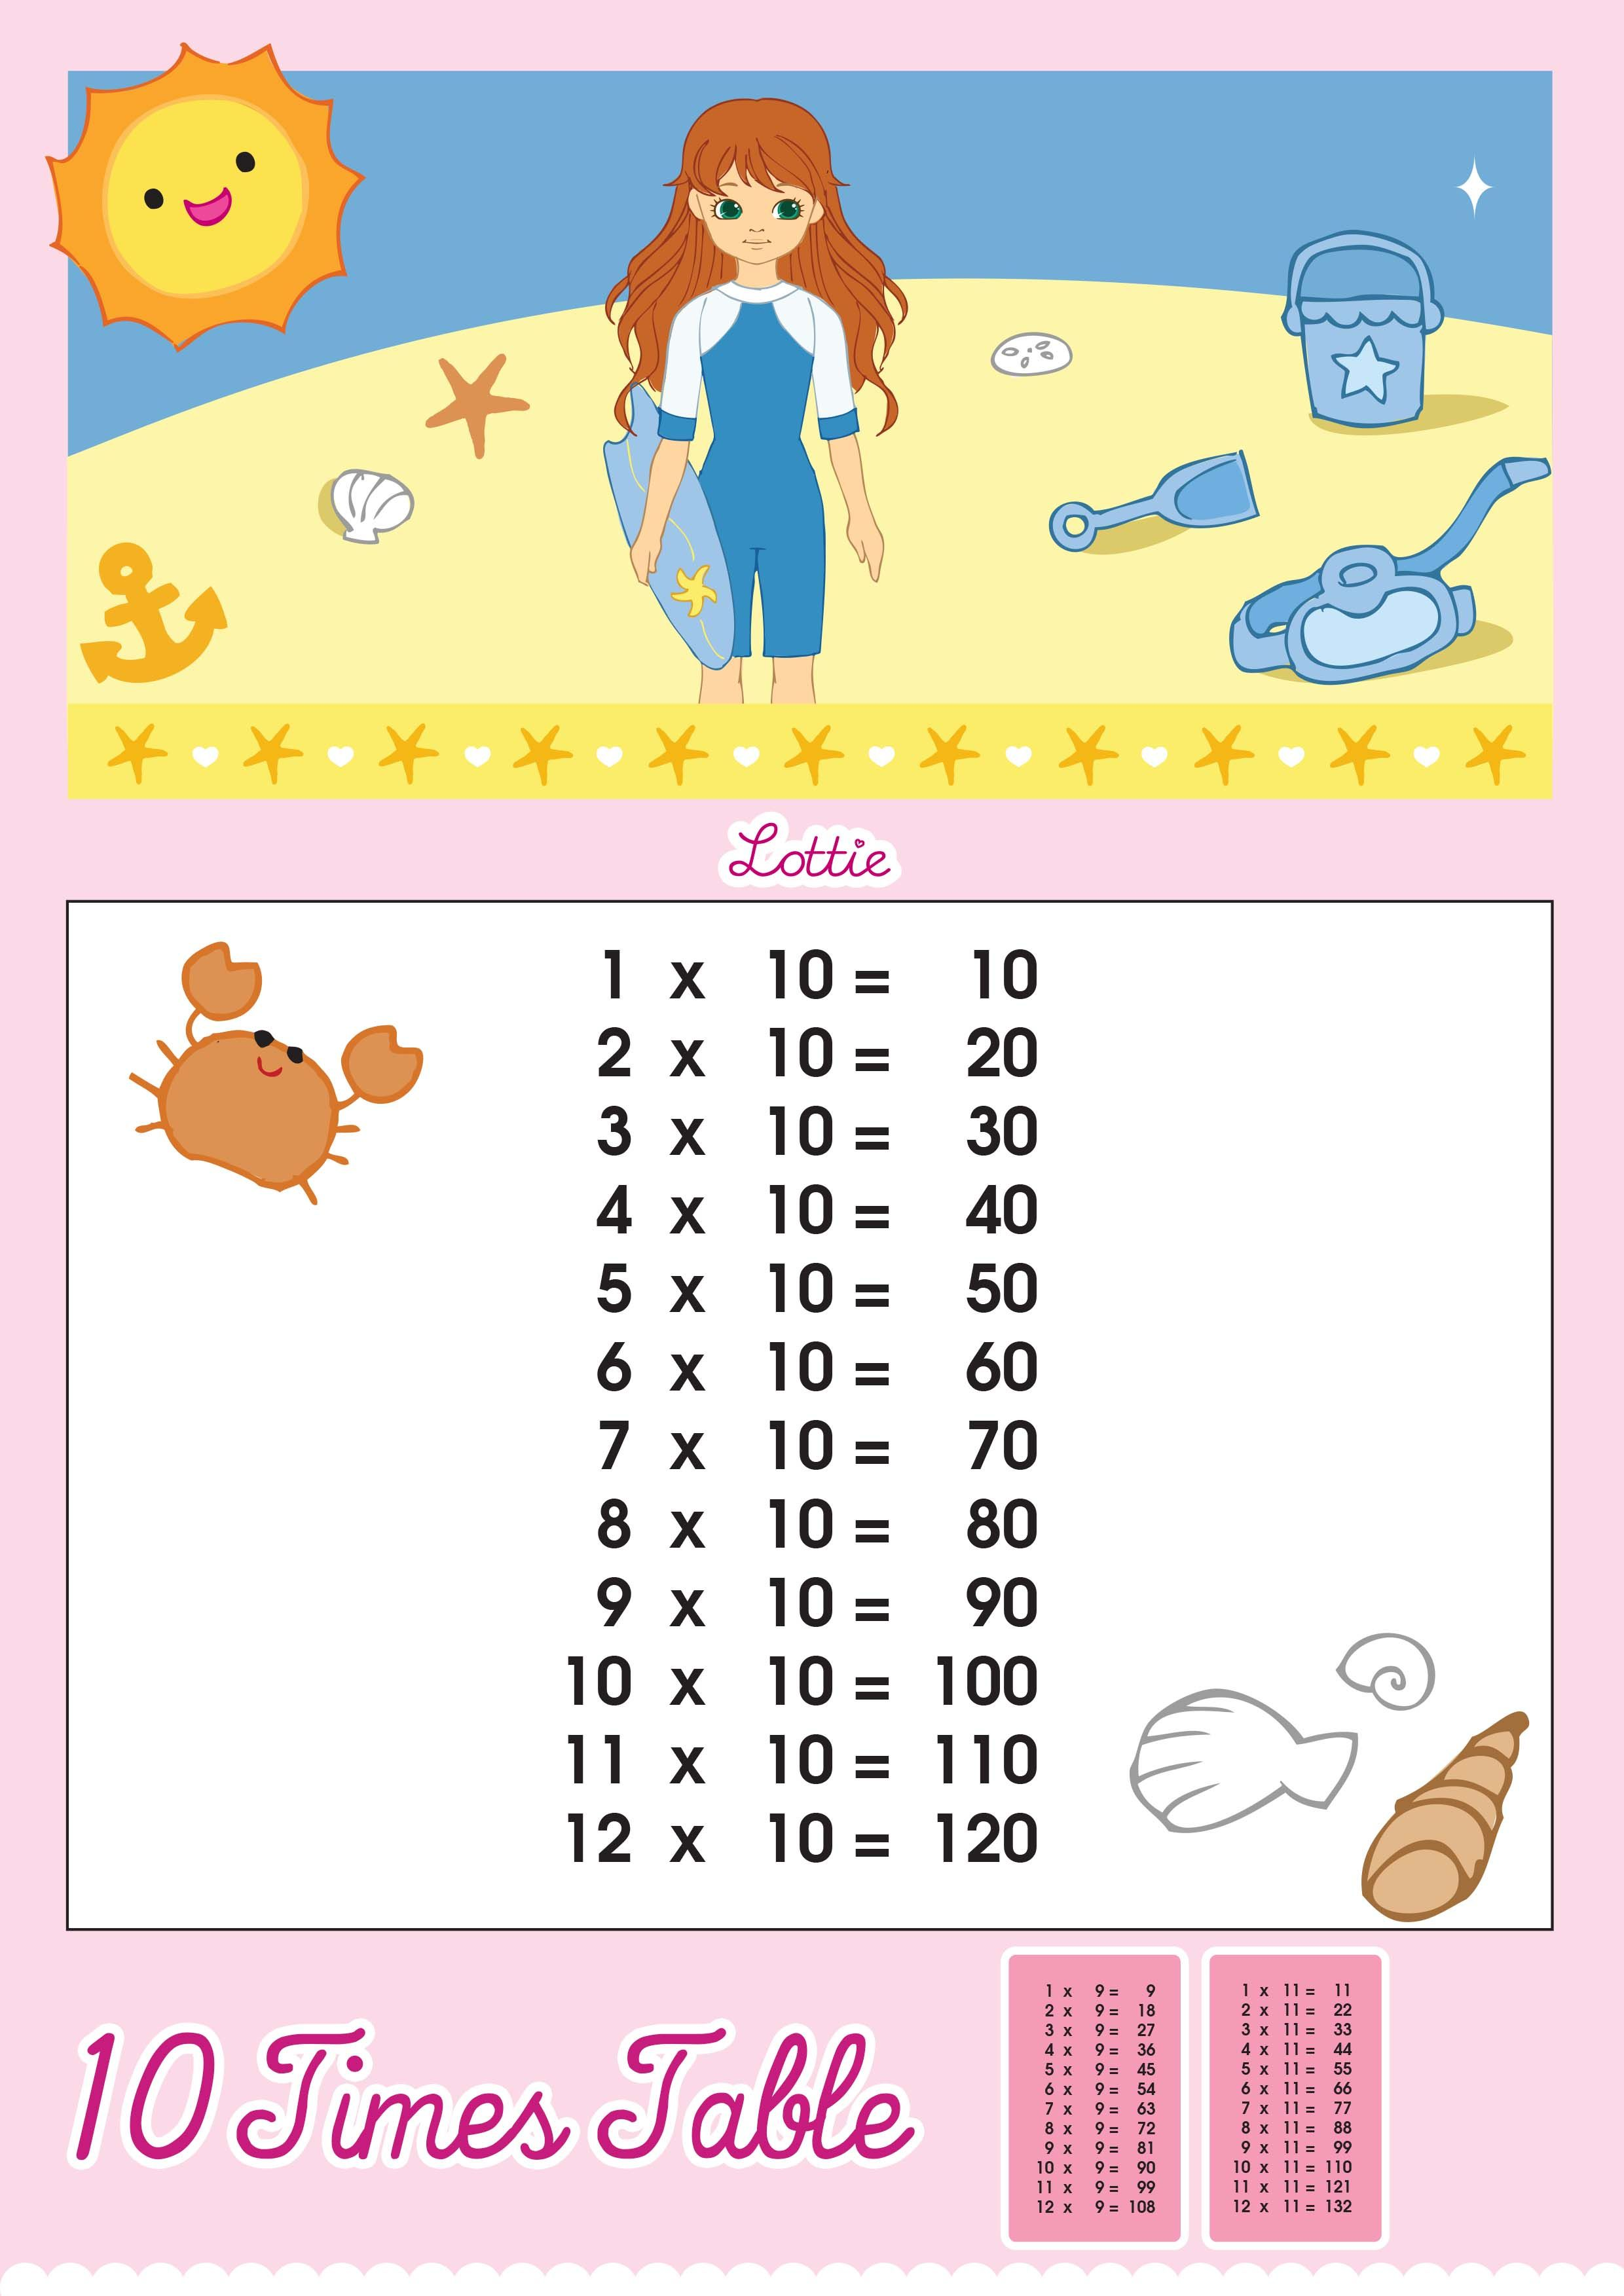 1 times table printable chart multiplication table printable 1 times table printable chart gamestrikefo Gallery